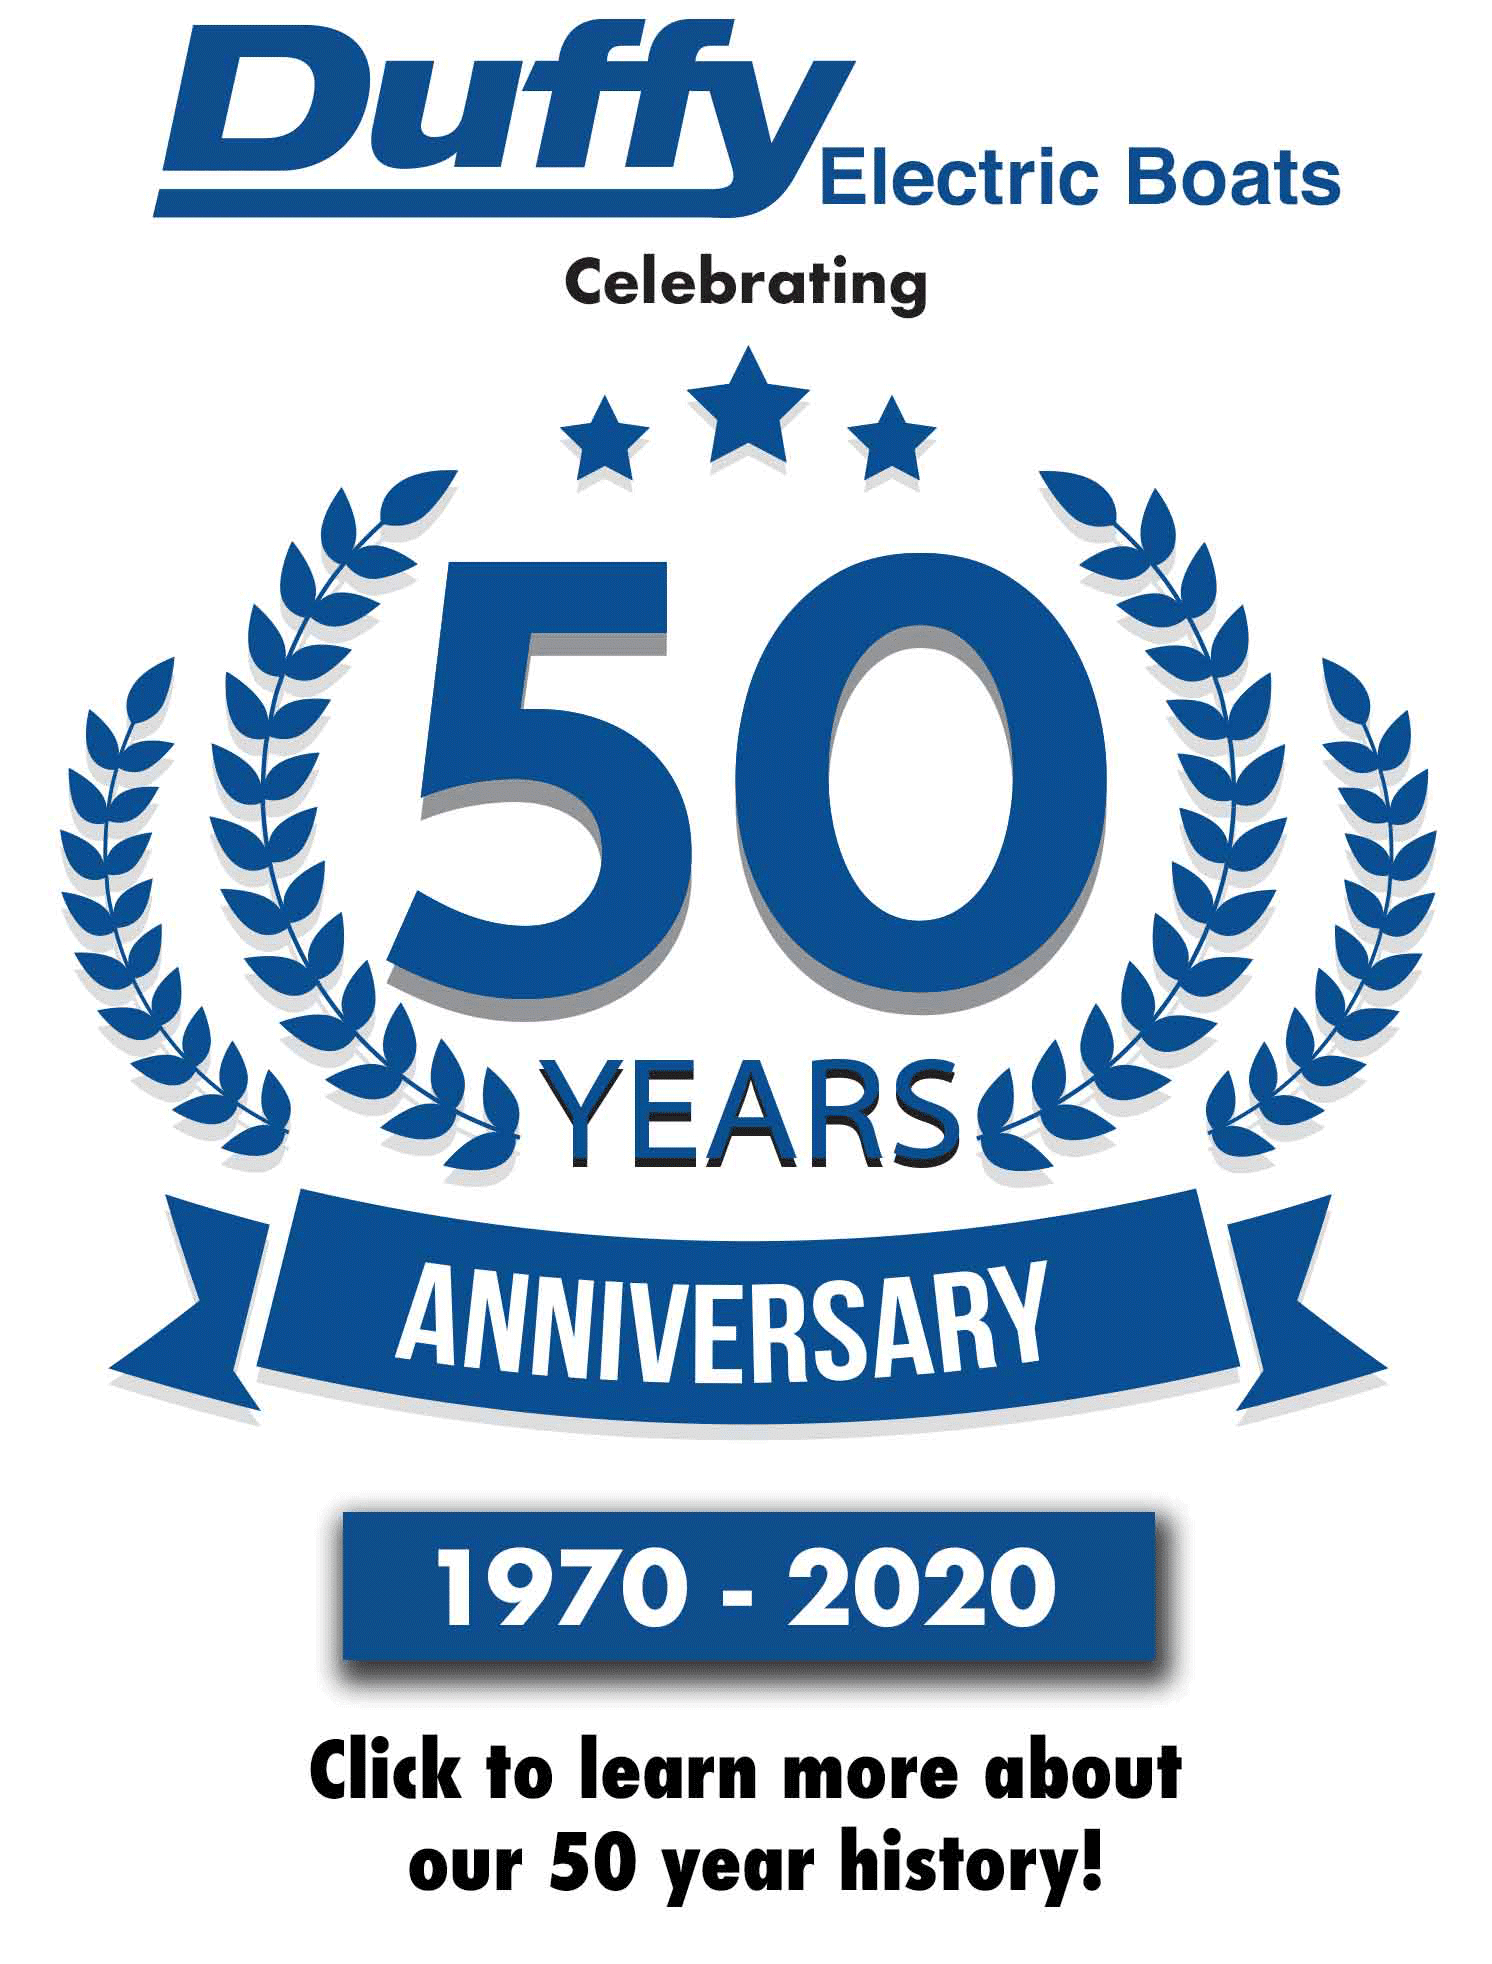 Duffy Electric Boats is celebrating its 50 year anniversary this year. 1970 to 2020.